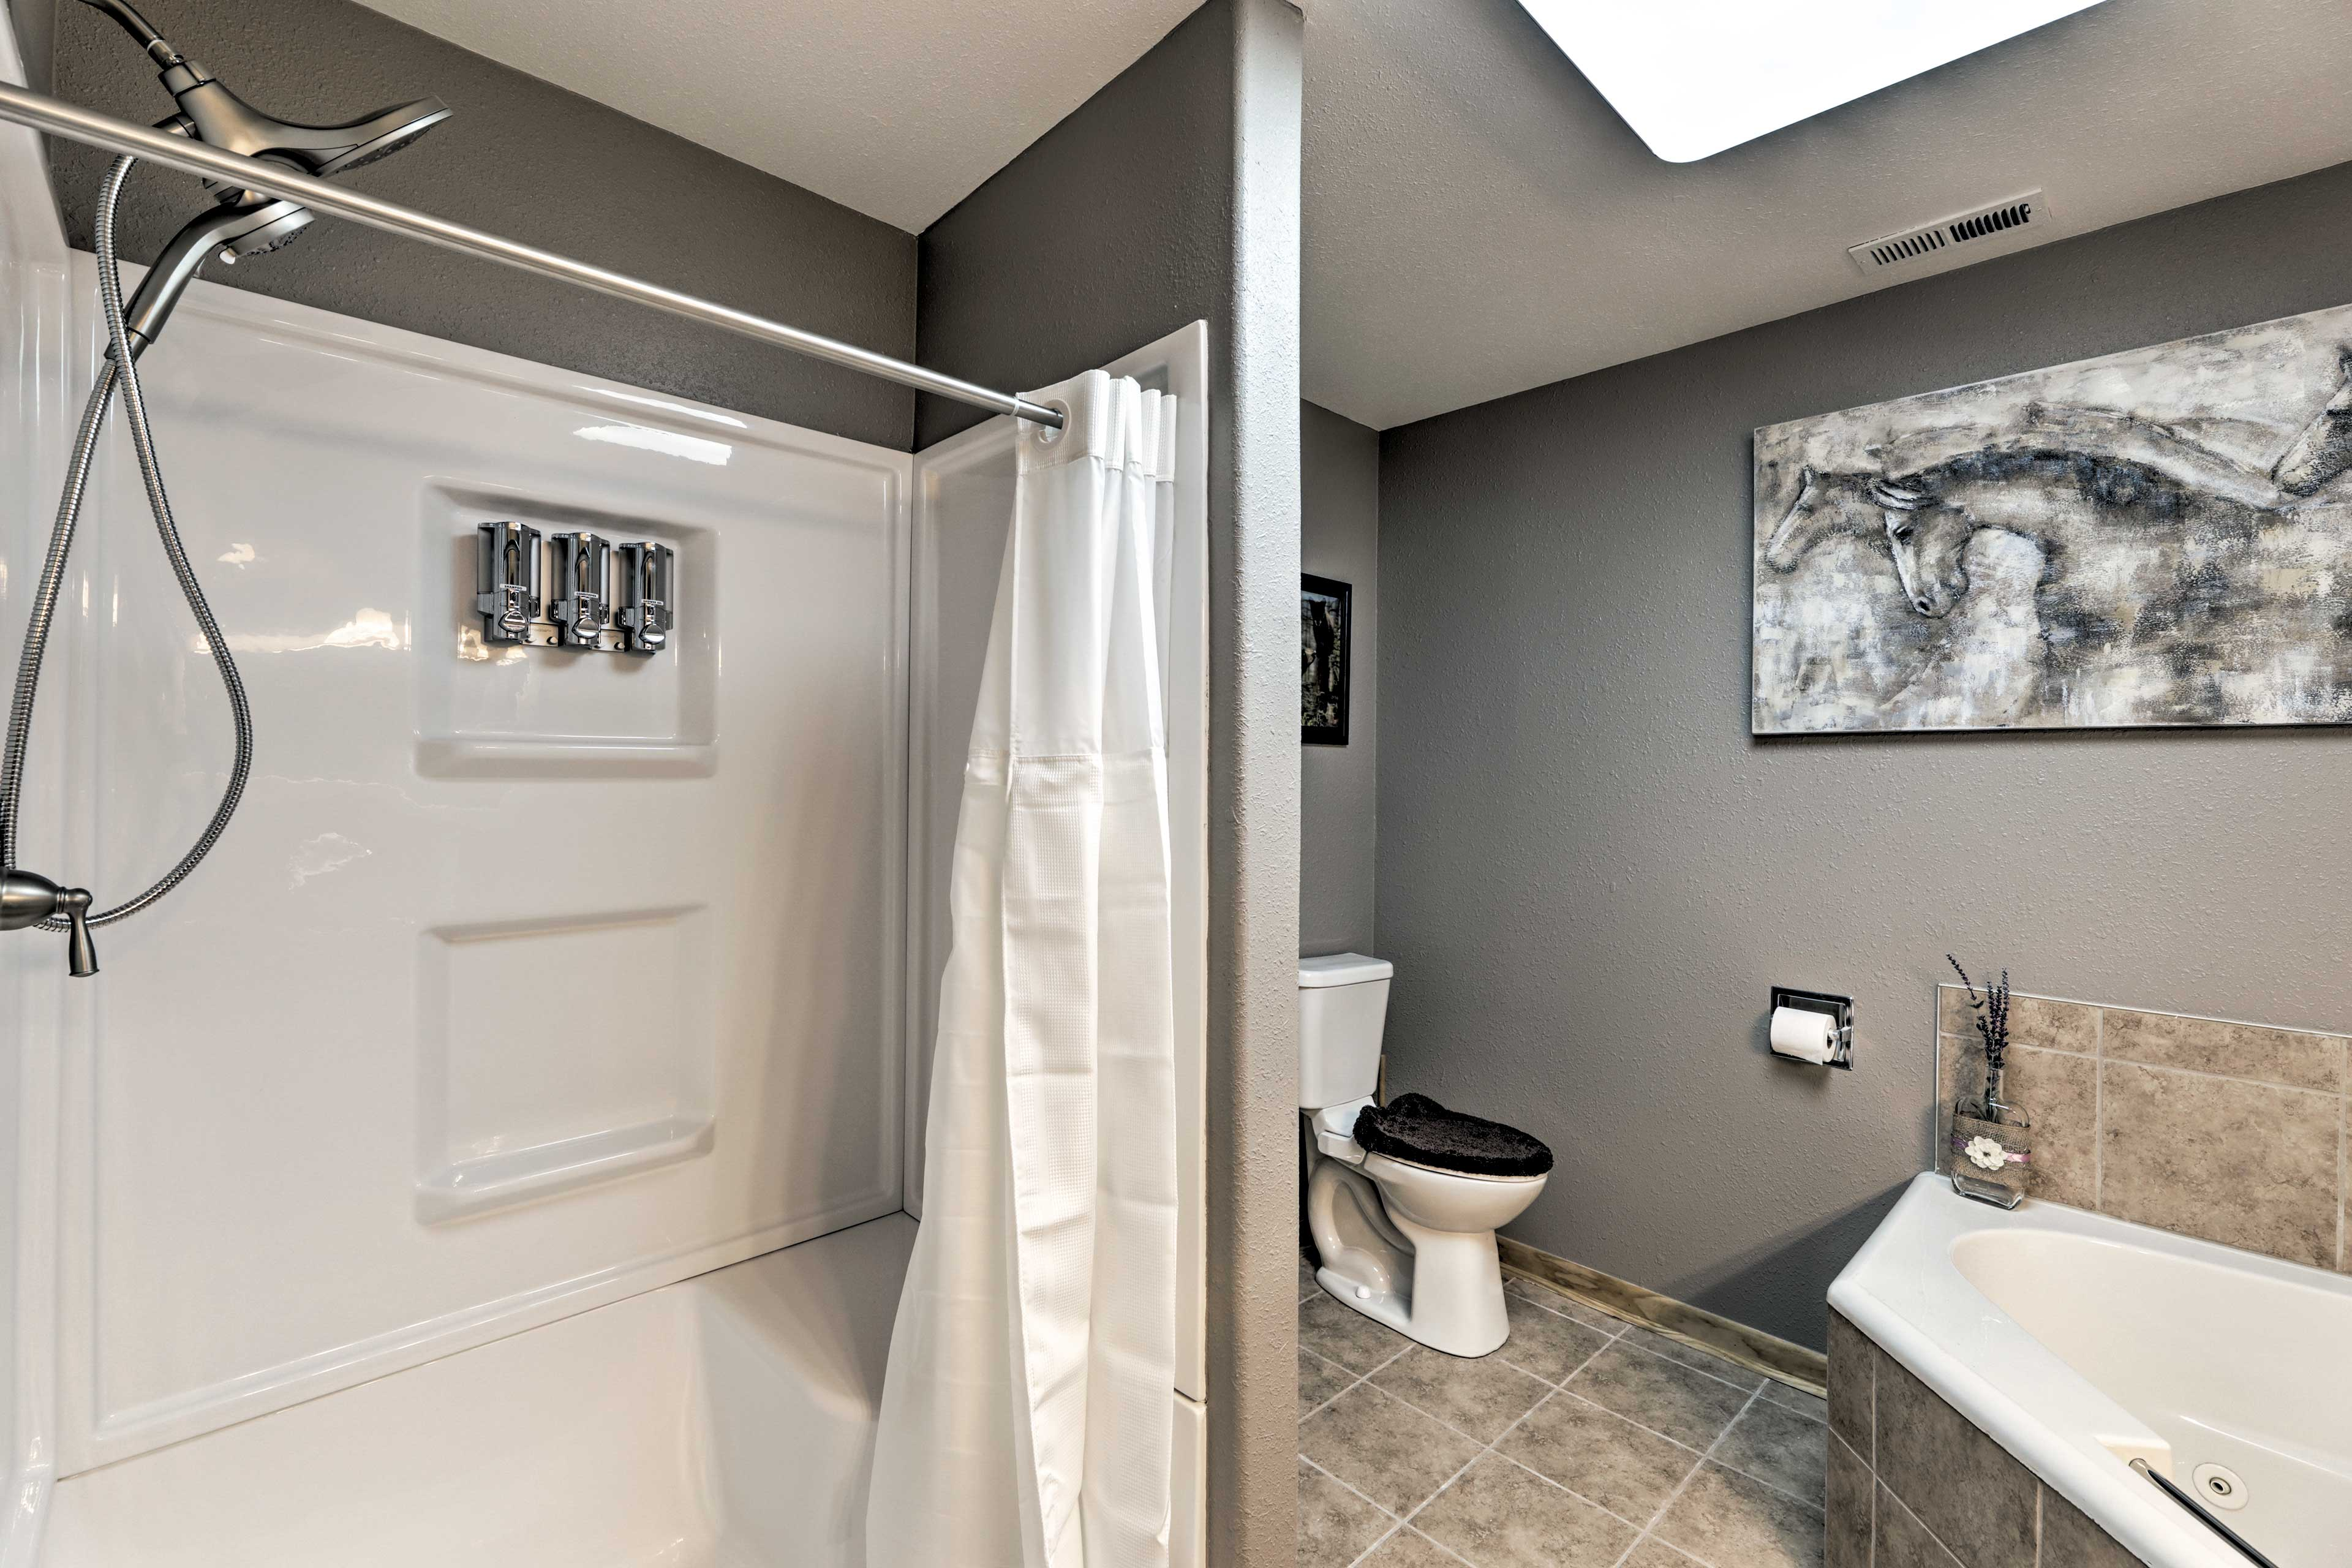 Take a quick rinse in the walk-in shower.